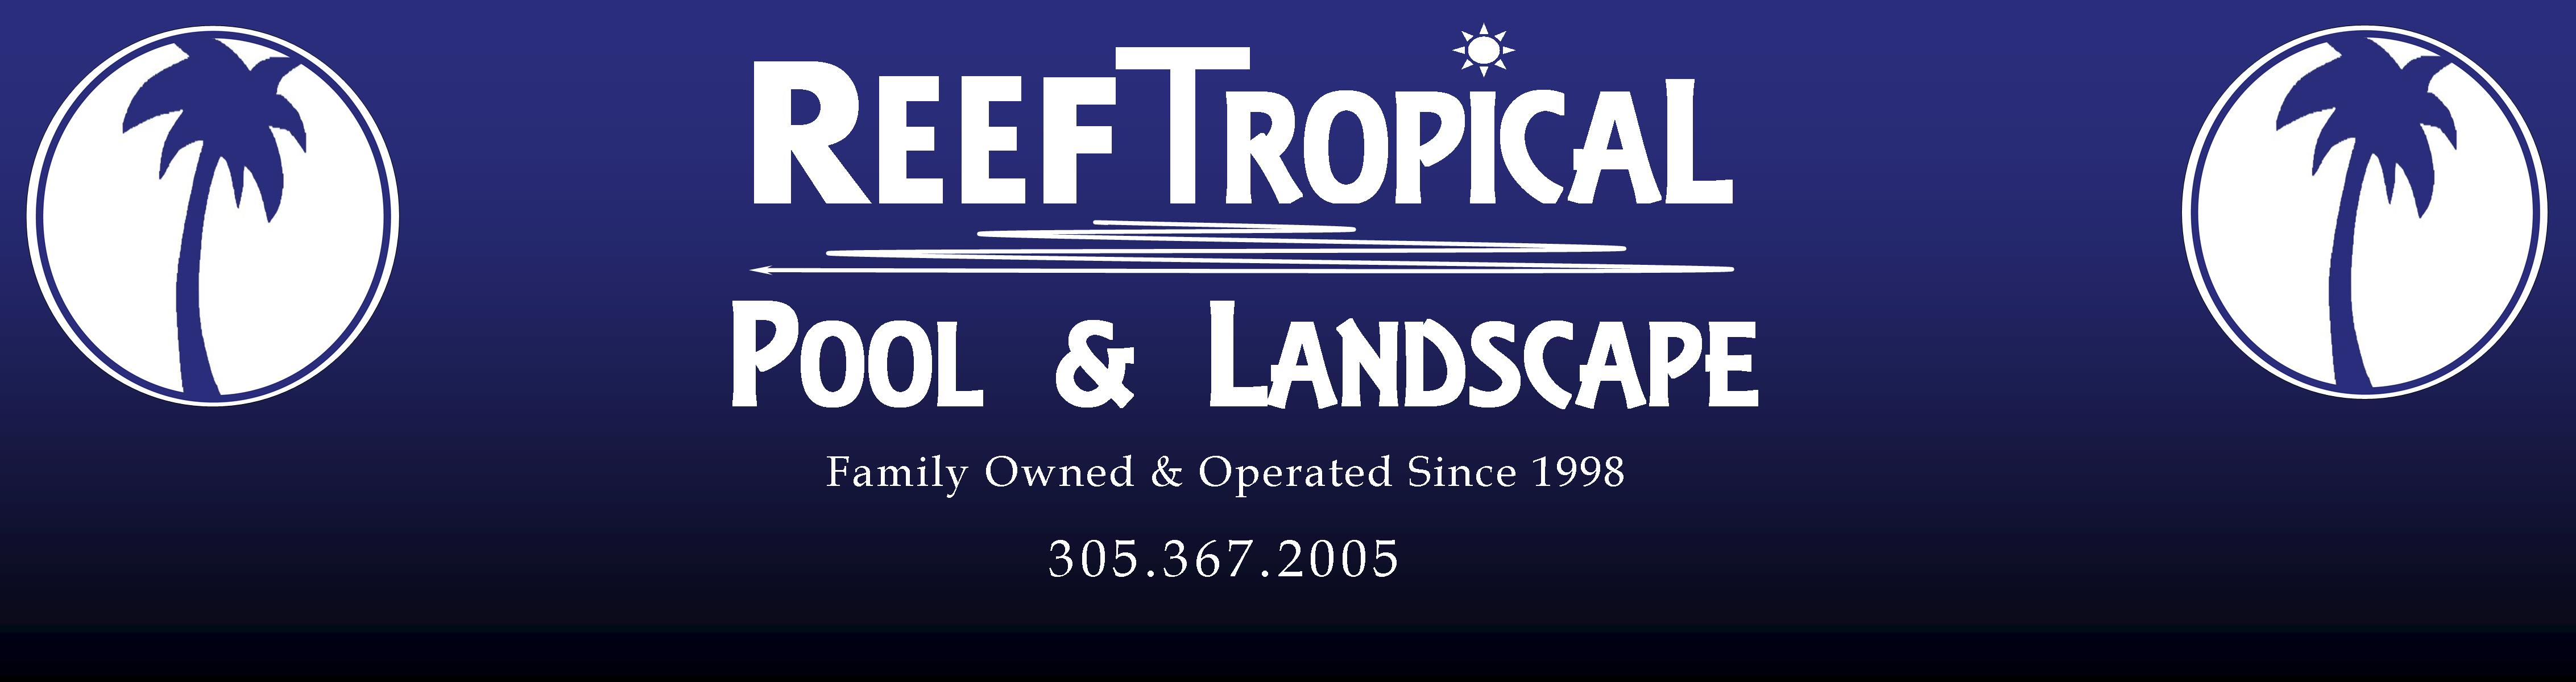 Reef_Tropical_Pool__Landscape_Logo-2